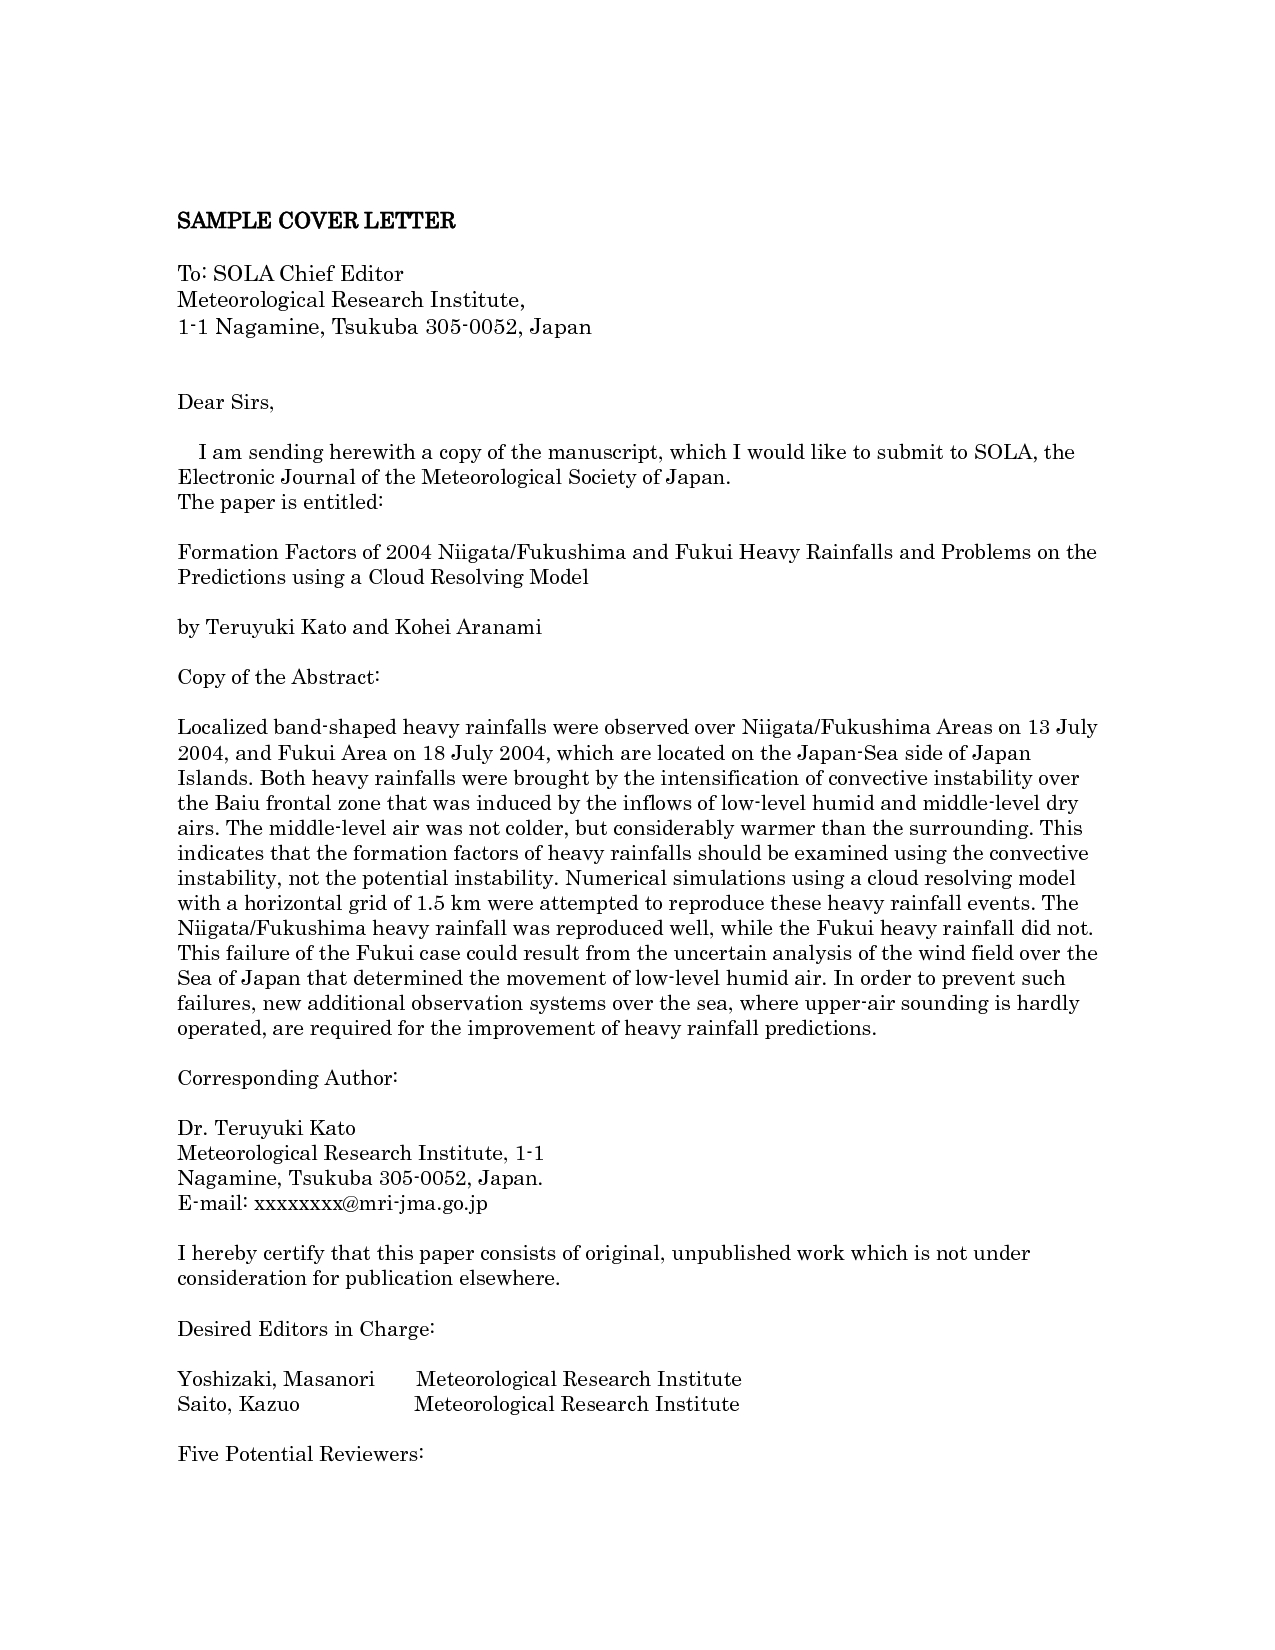 014 Research Paper Editor Cover Letter Breathtaking Software Free Editorial Full